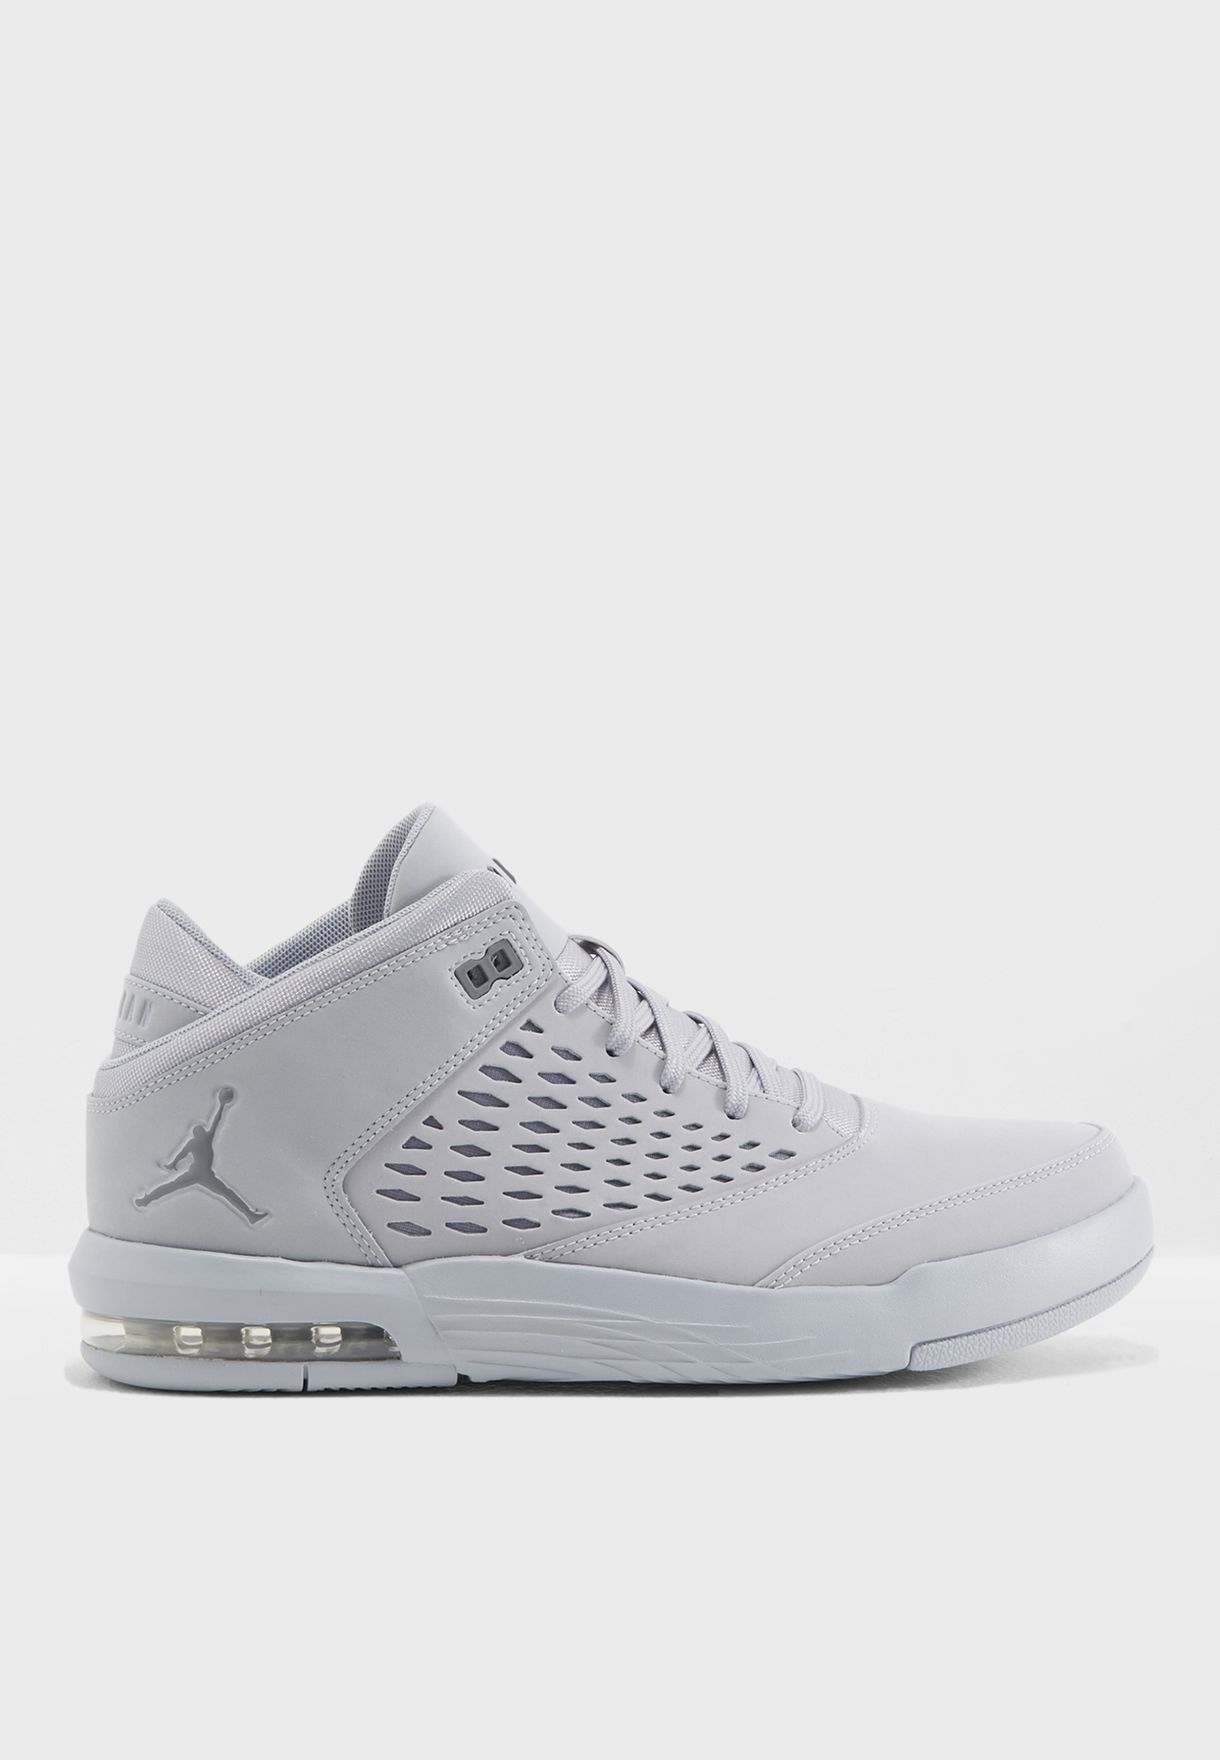 a8eec7fd0a0568 Shop Nike grey Jordan Flight Origin 4 921196-005 for Men in UAE ...